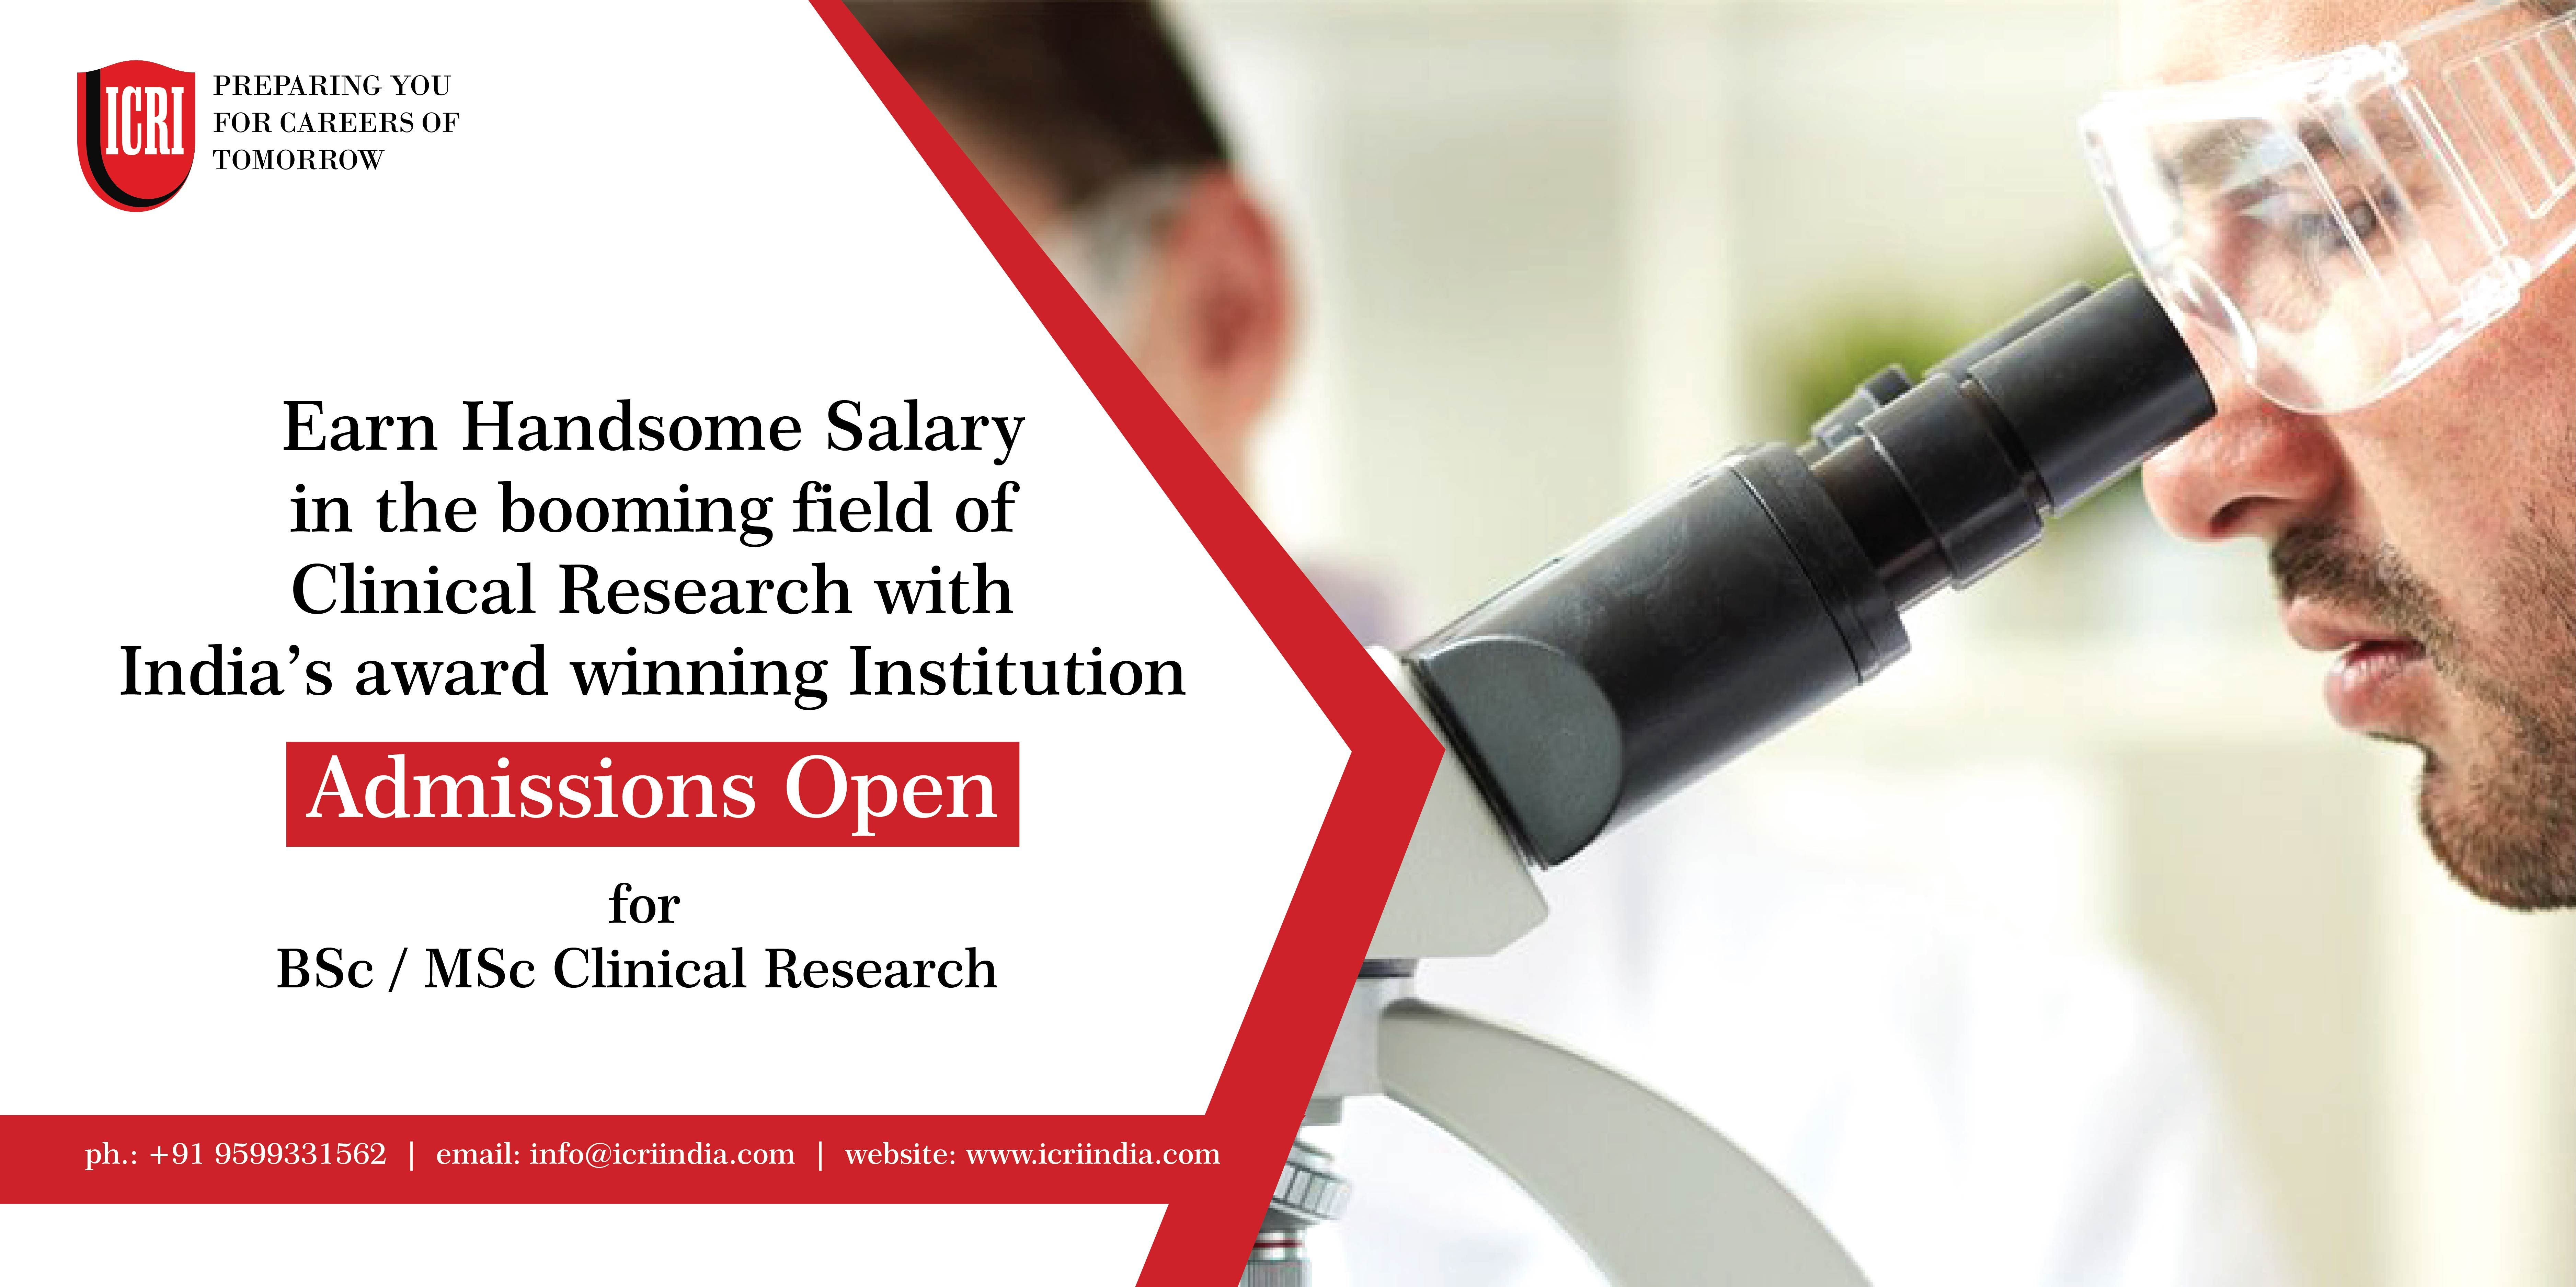 Clinical Research Icri For Admissions Http Icriindia Com